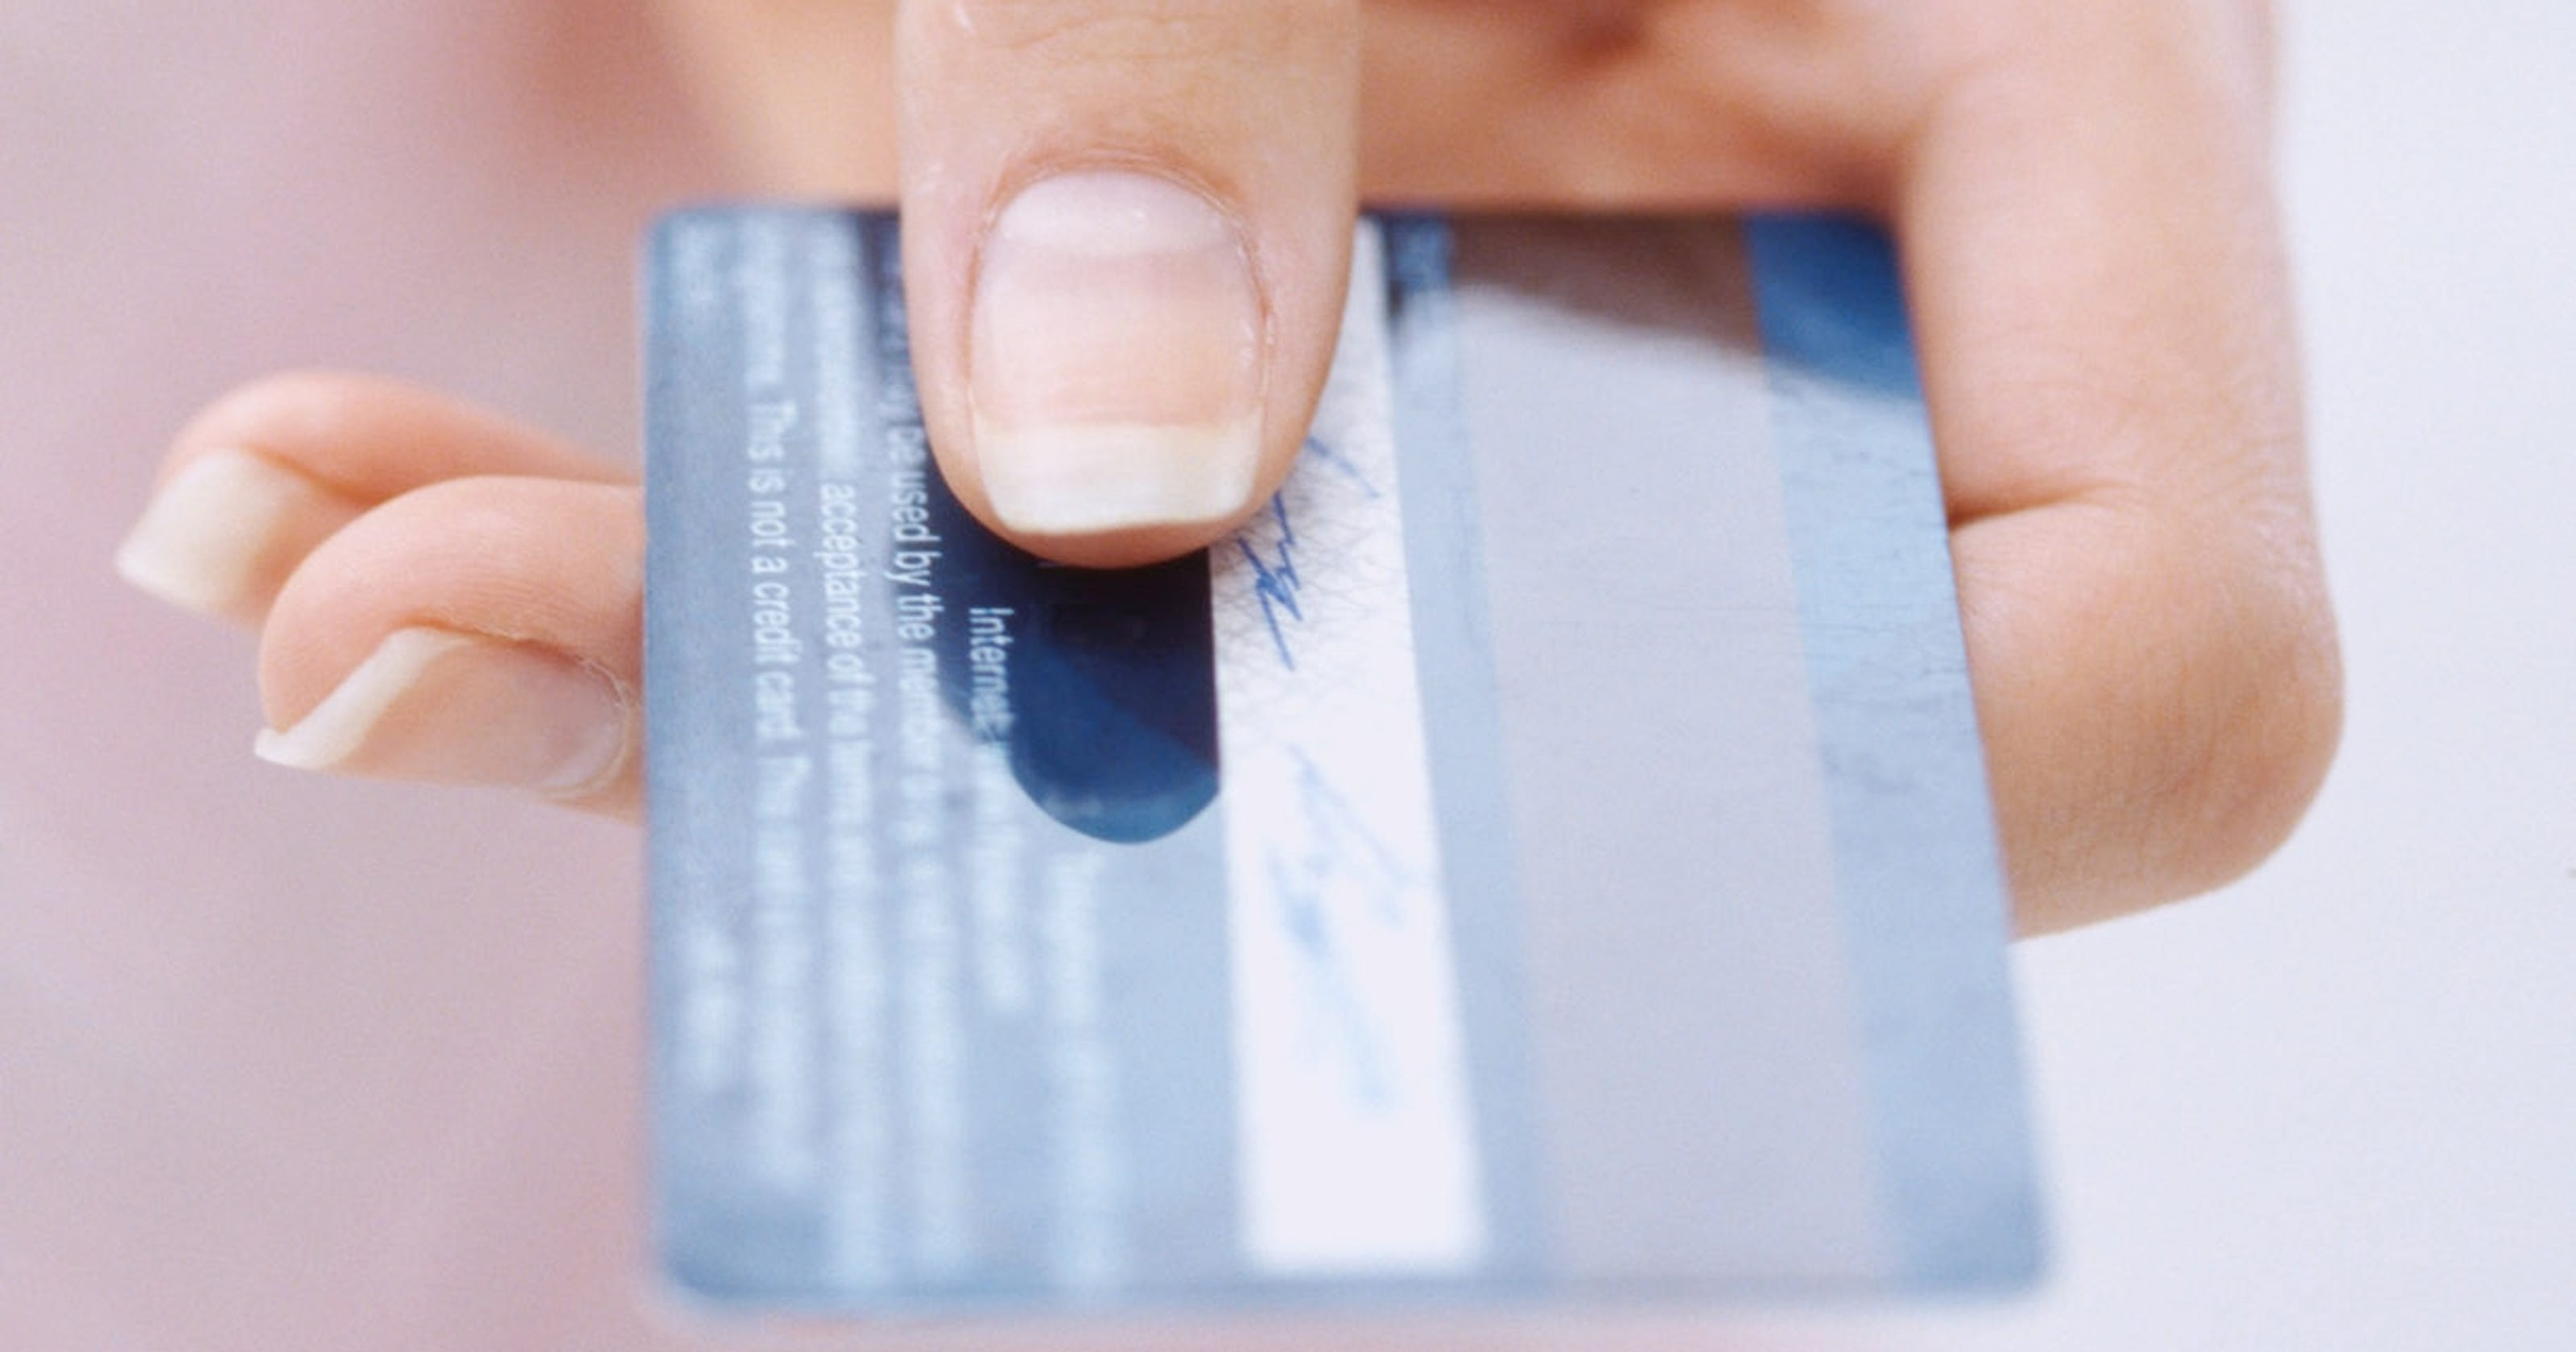 Identity theft growing, costly to victims